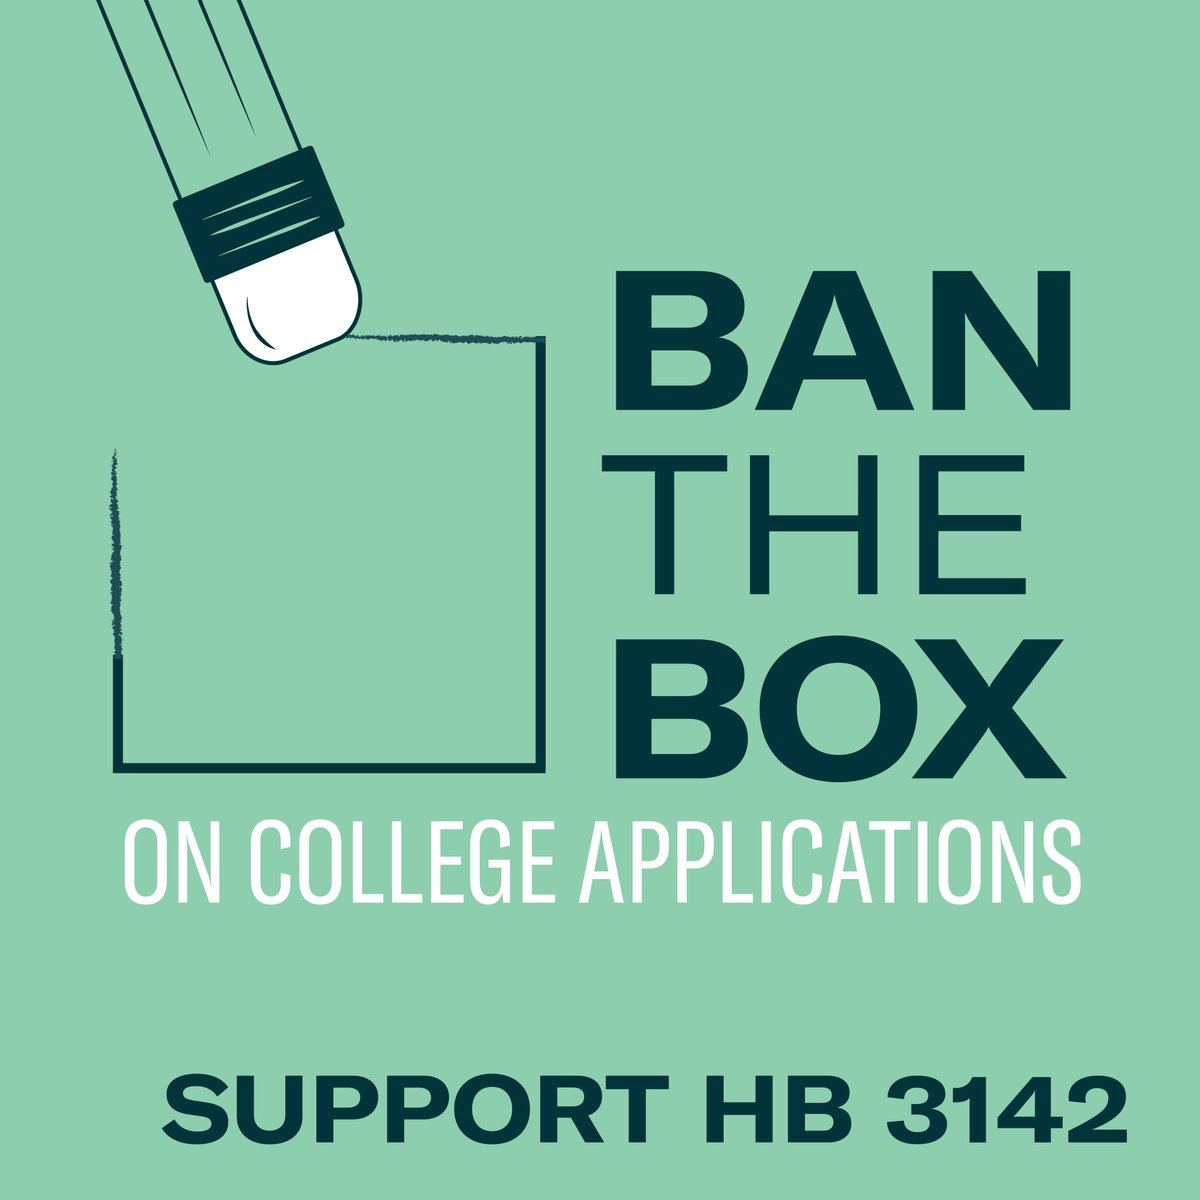 HB 3142 has passed out of the Senate Judiciary committee! We are proud to work with our sponsor, @PatMcguire43, and partner @HeartlandPolicy to ensure that people with criminal records are not deterred from getting an education. #banthebox  #twill<br>http://pic.twitter.com/BqUnhTZV8R